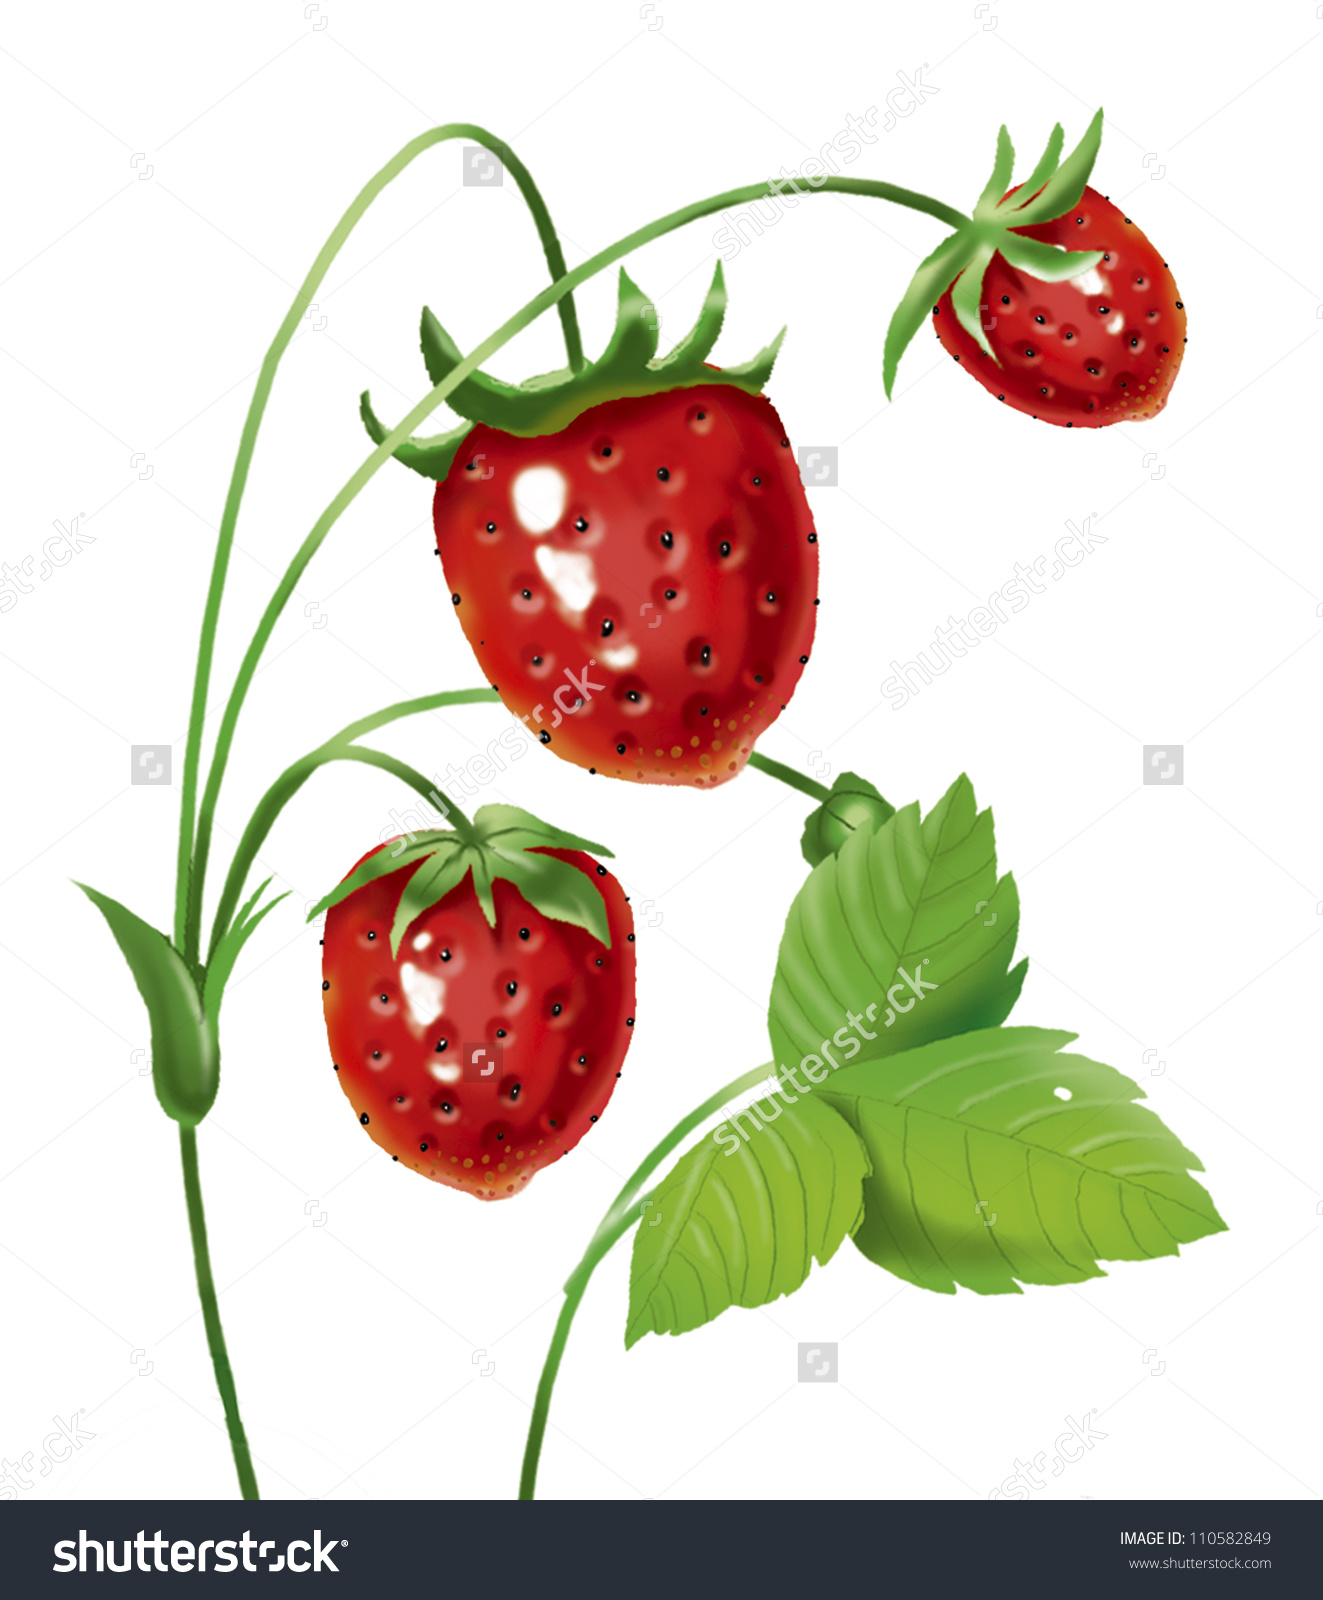 Strawberry Bush Ripe Wild Strawberry Green Stock Illustration.